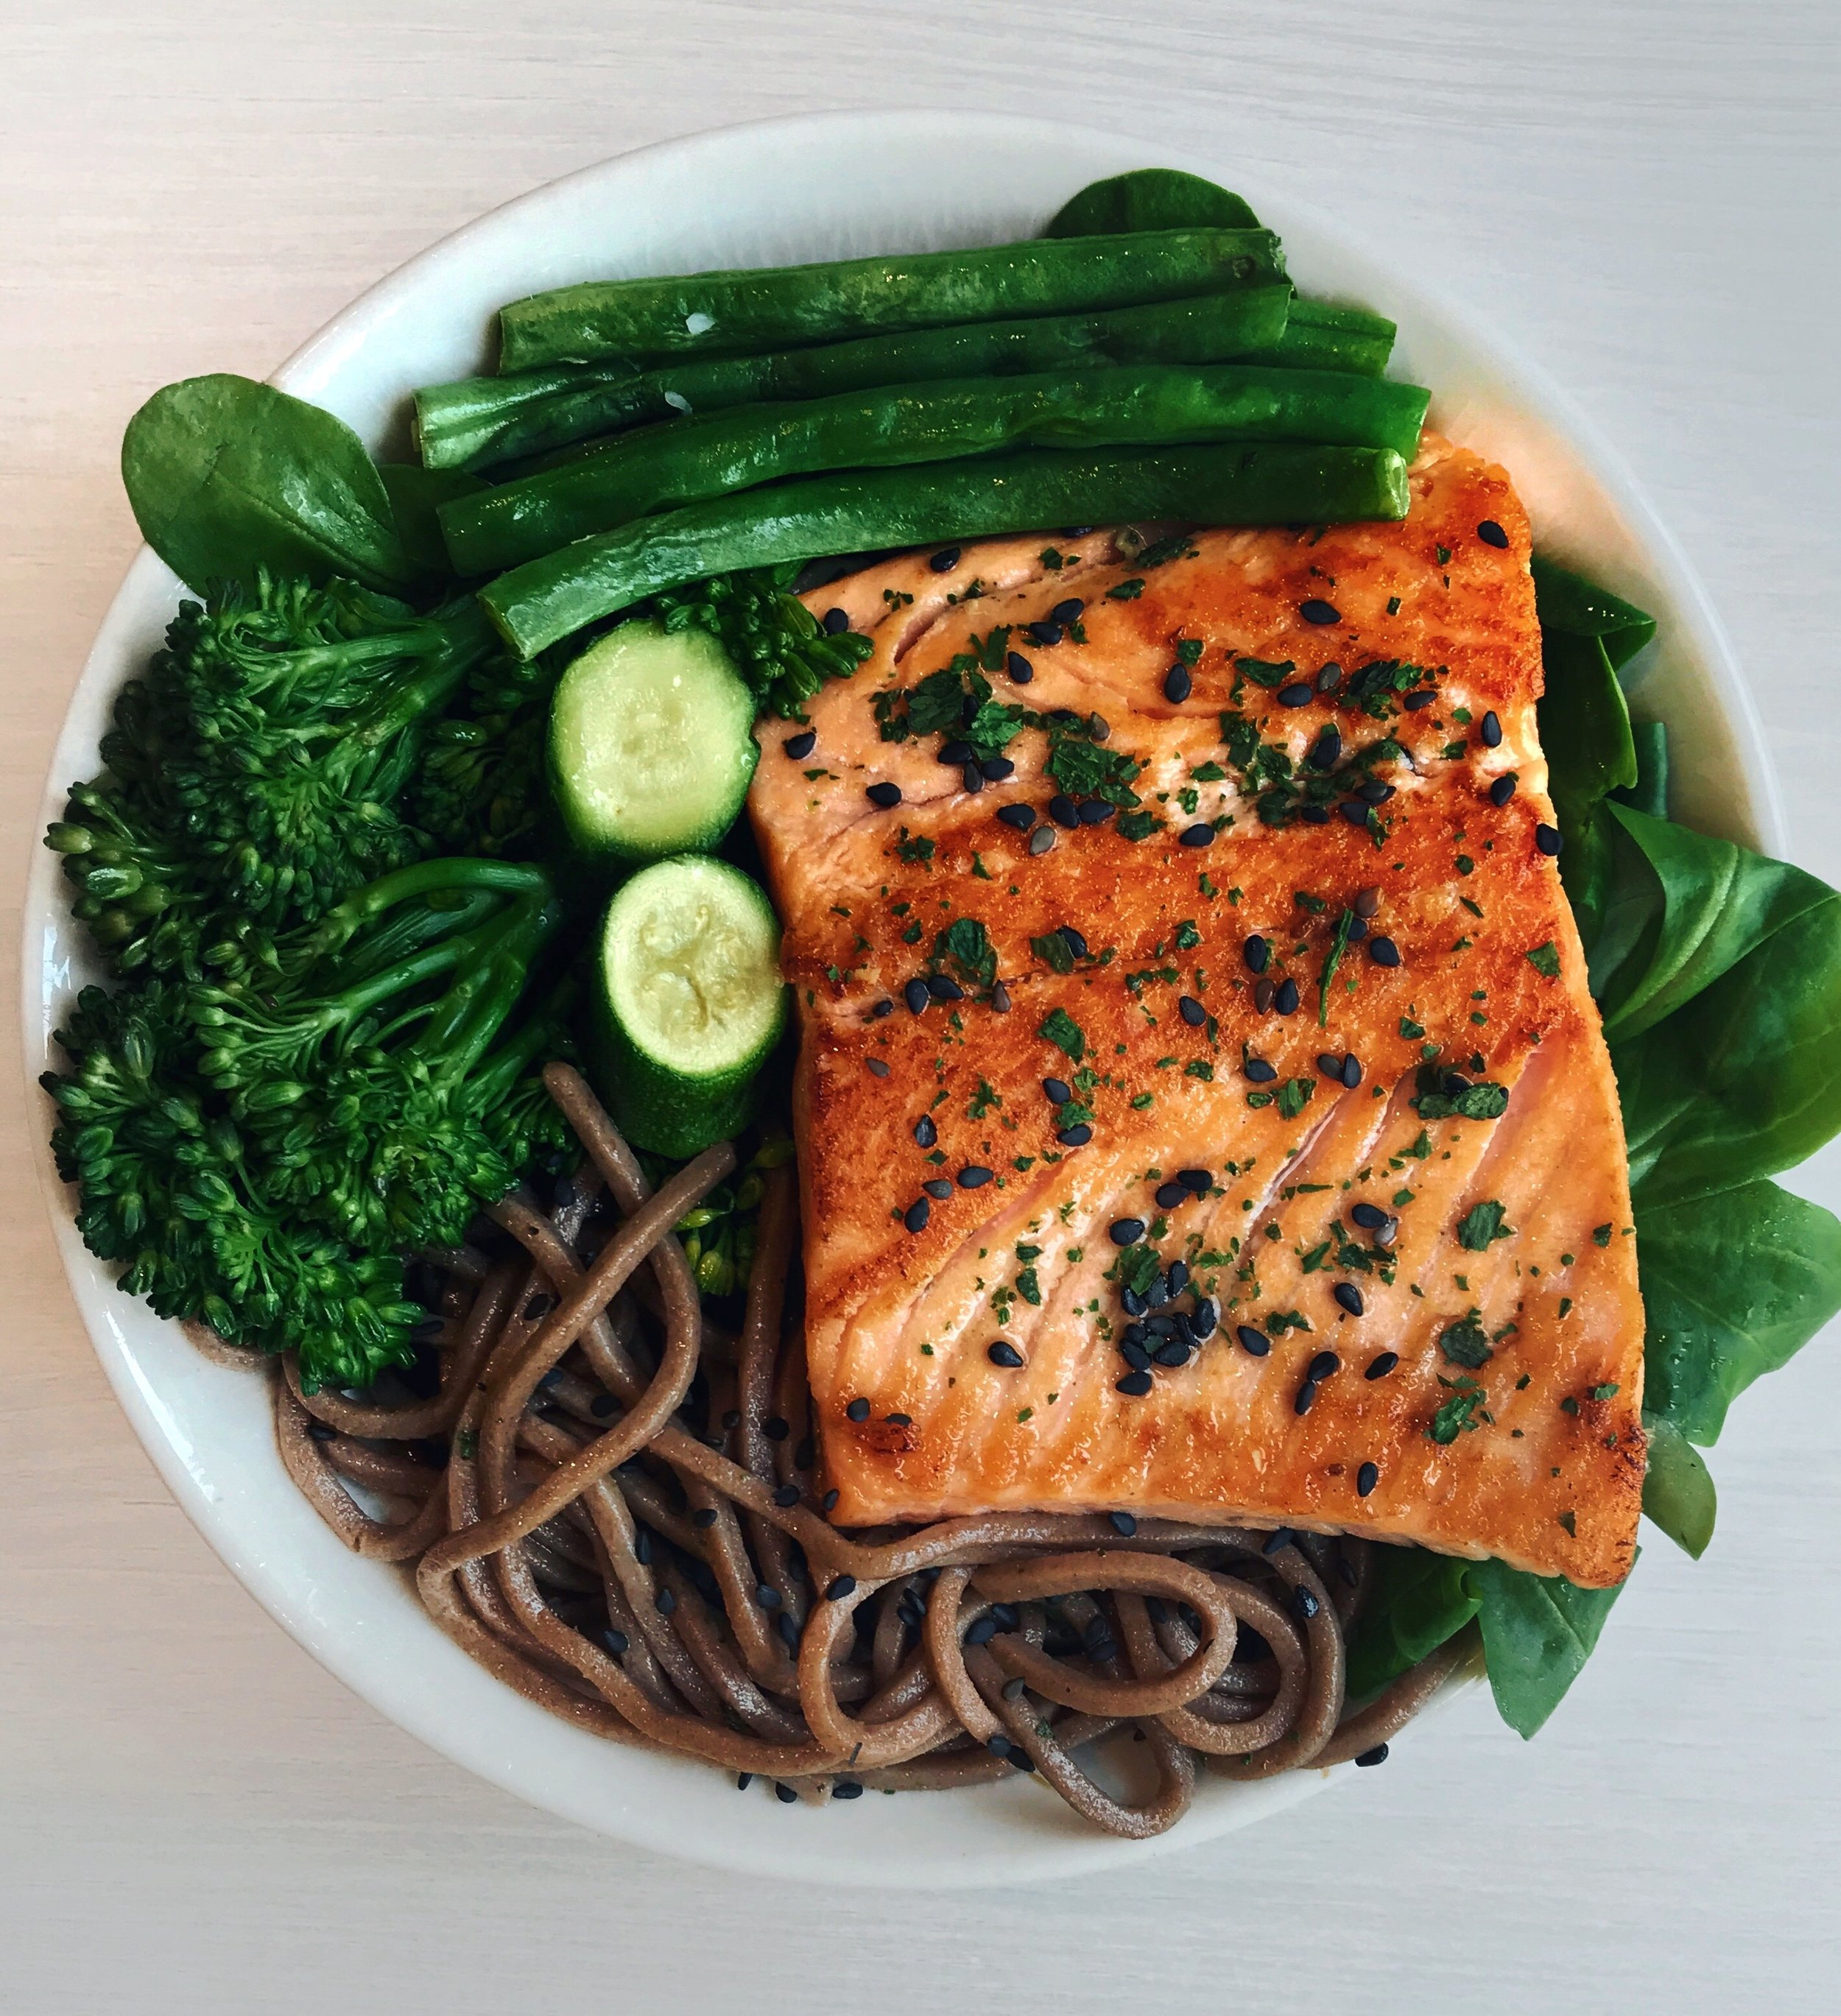 Grilled Salmon, Noodles & Mix Greens - Grilled wild salmon (cooked in olive oil for about 3mn on each side)+wholewheat noodles (boiled for about 6min in water)+ steamed broccolini (steamed for 10min) + leafy greens + zucchini (steamed as well for about 10min)+ green beans (steamed for 10min).Quick tip on cooking salmon: to get a crispy skin + golden color on the salmon, I recommend starting the cooking on high heat, and putting the non-skin part first. After 1min turn back on low/medium-heat, cook 2 extra minutes and flip + leave to stay for about 3min more.